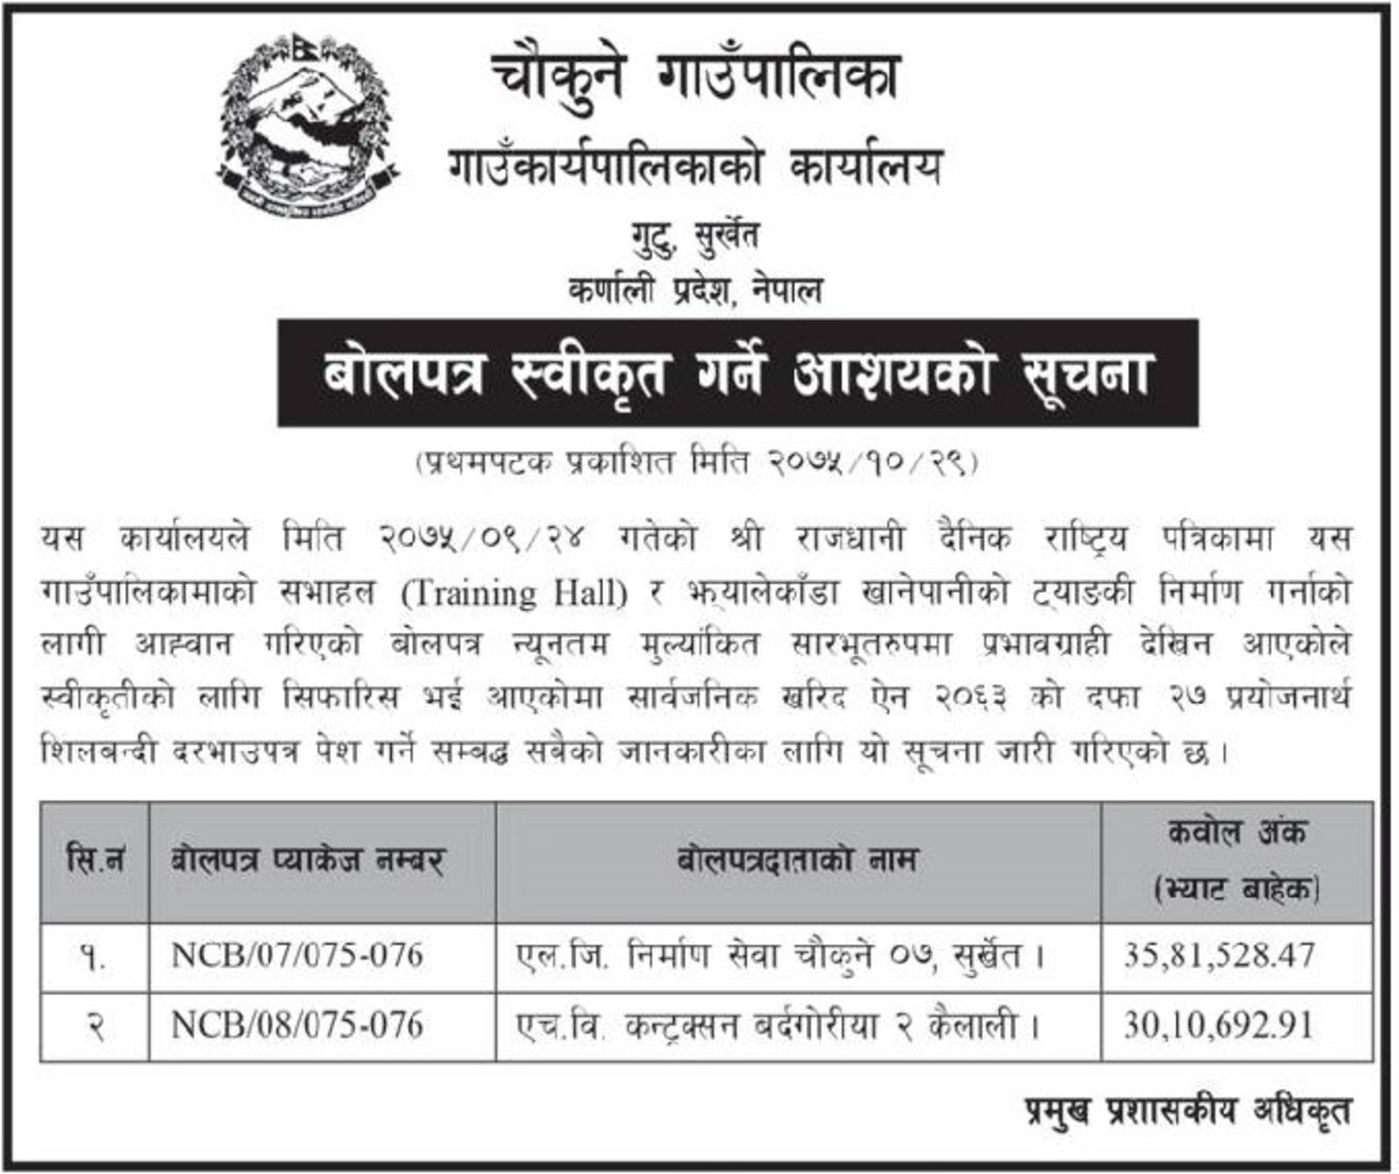 bids and tenders nepal - letter of intent - construction of l.g.